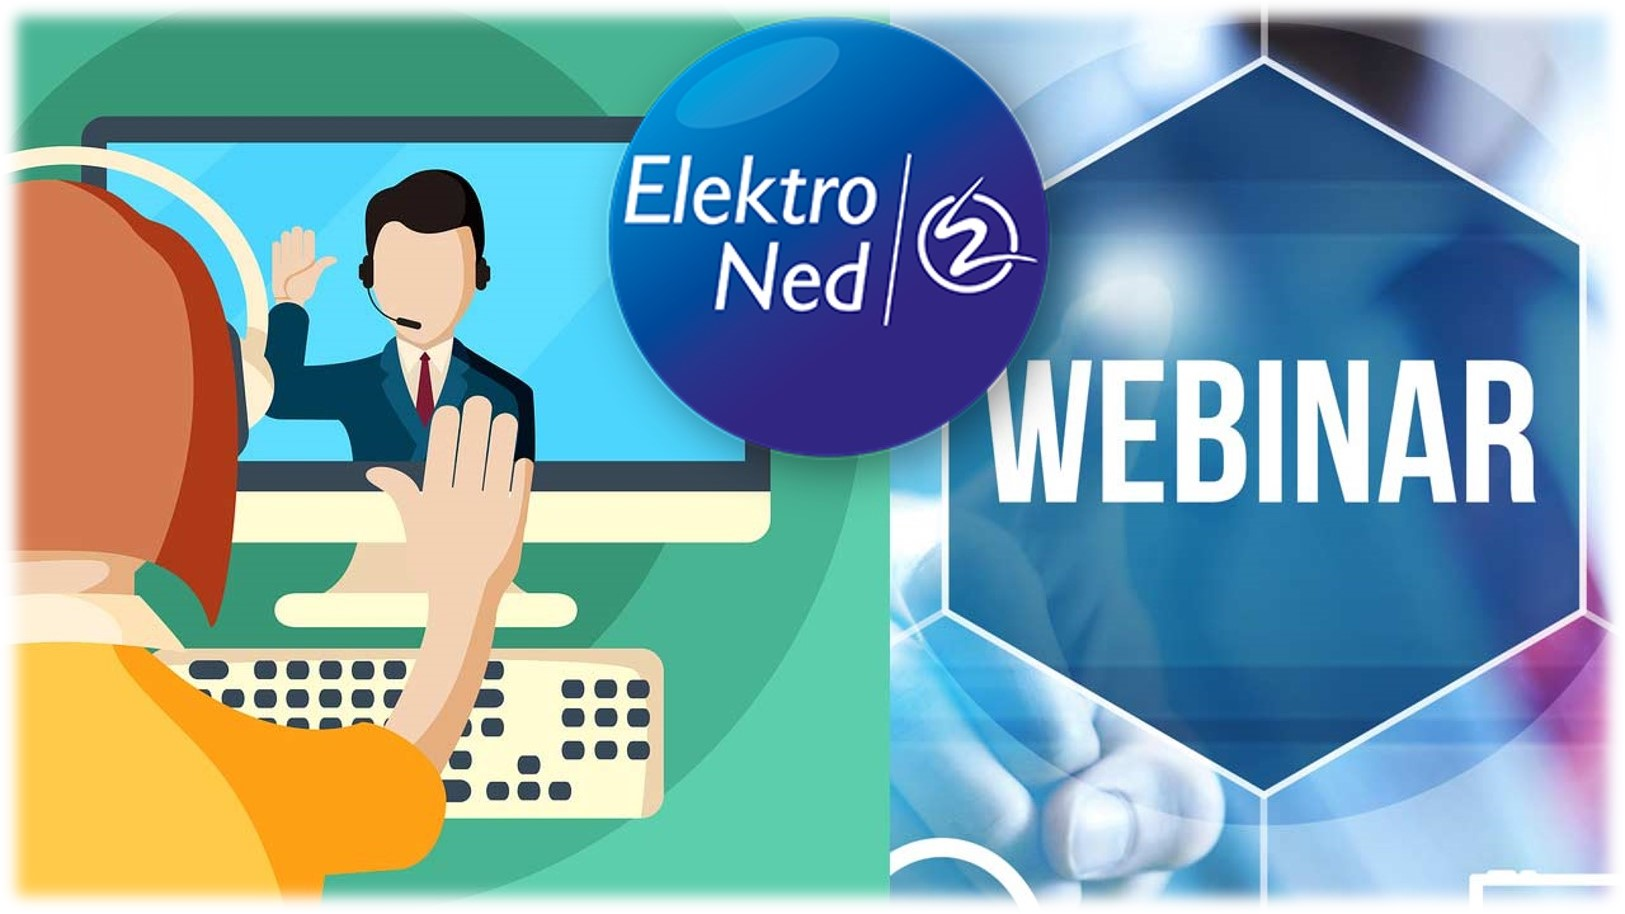 Online event ElektroNed vr. 20 november 10.00 uur